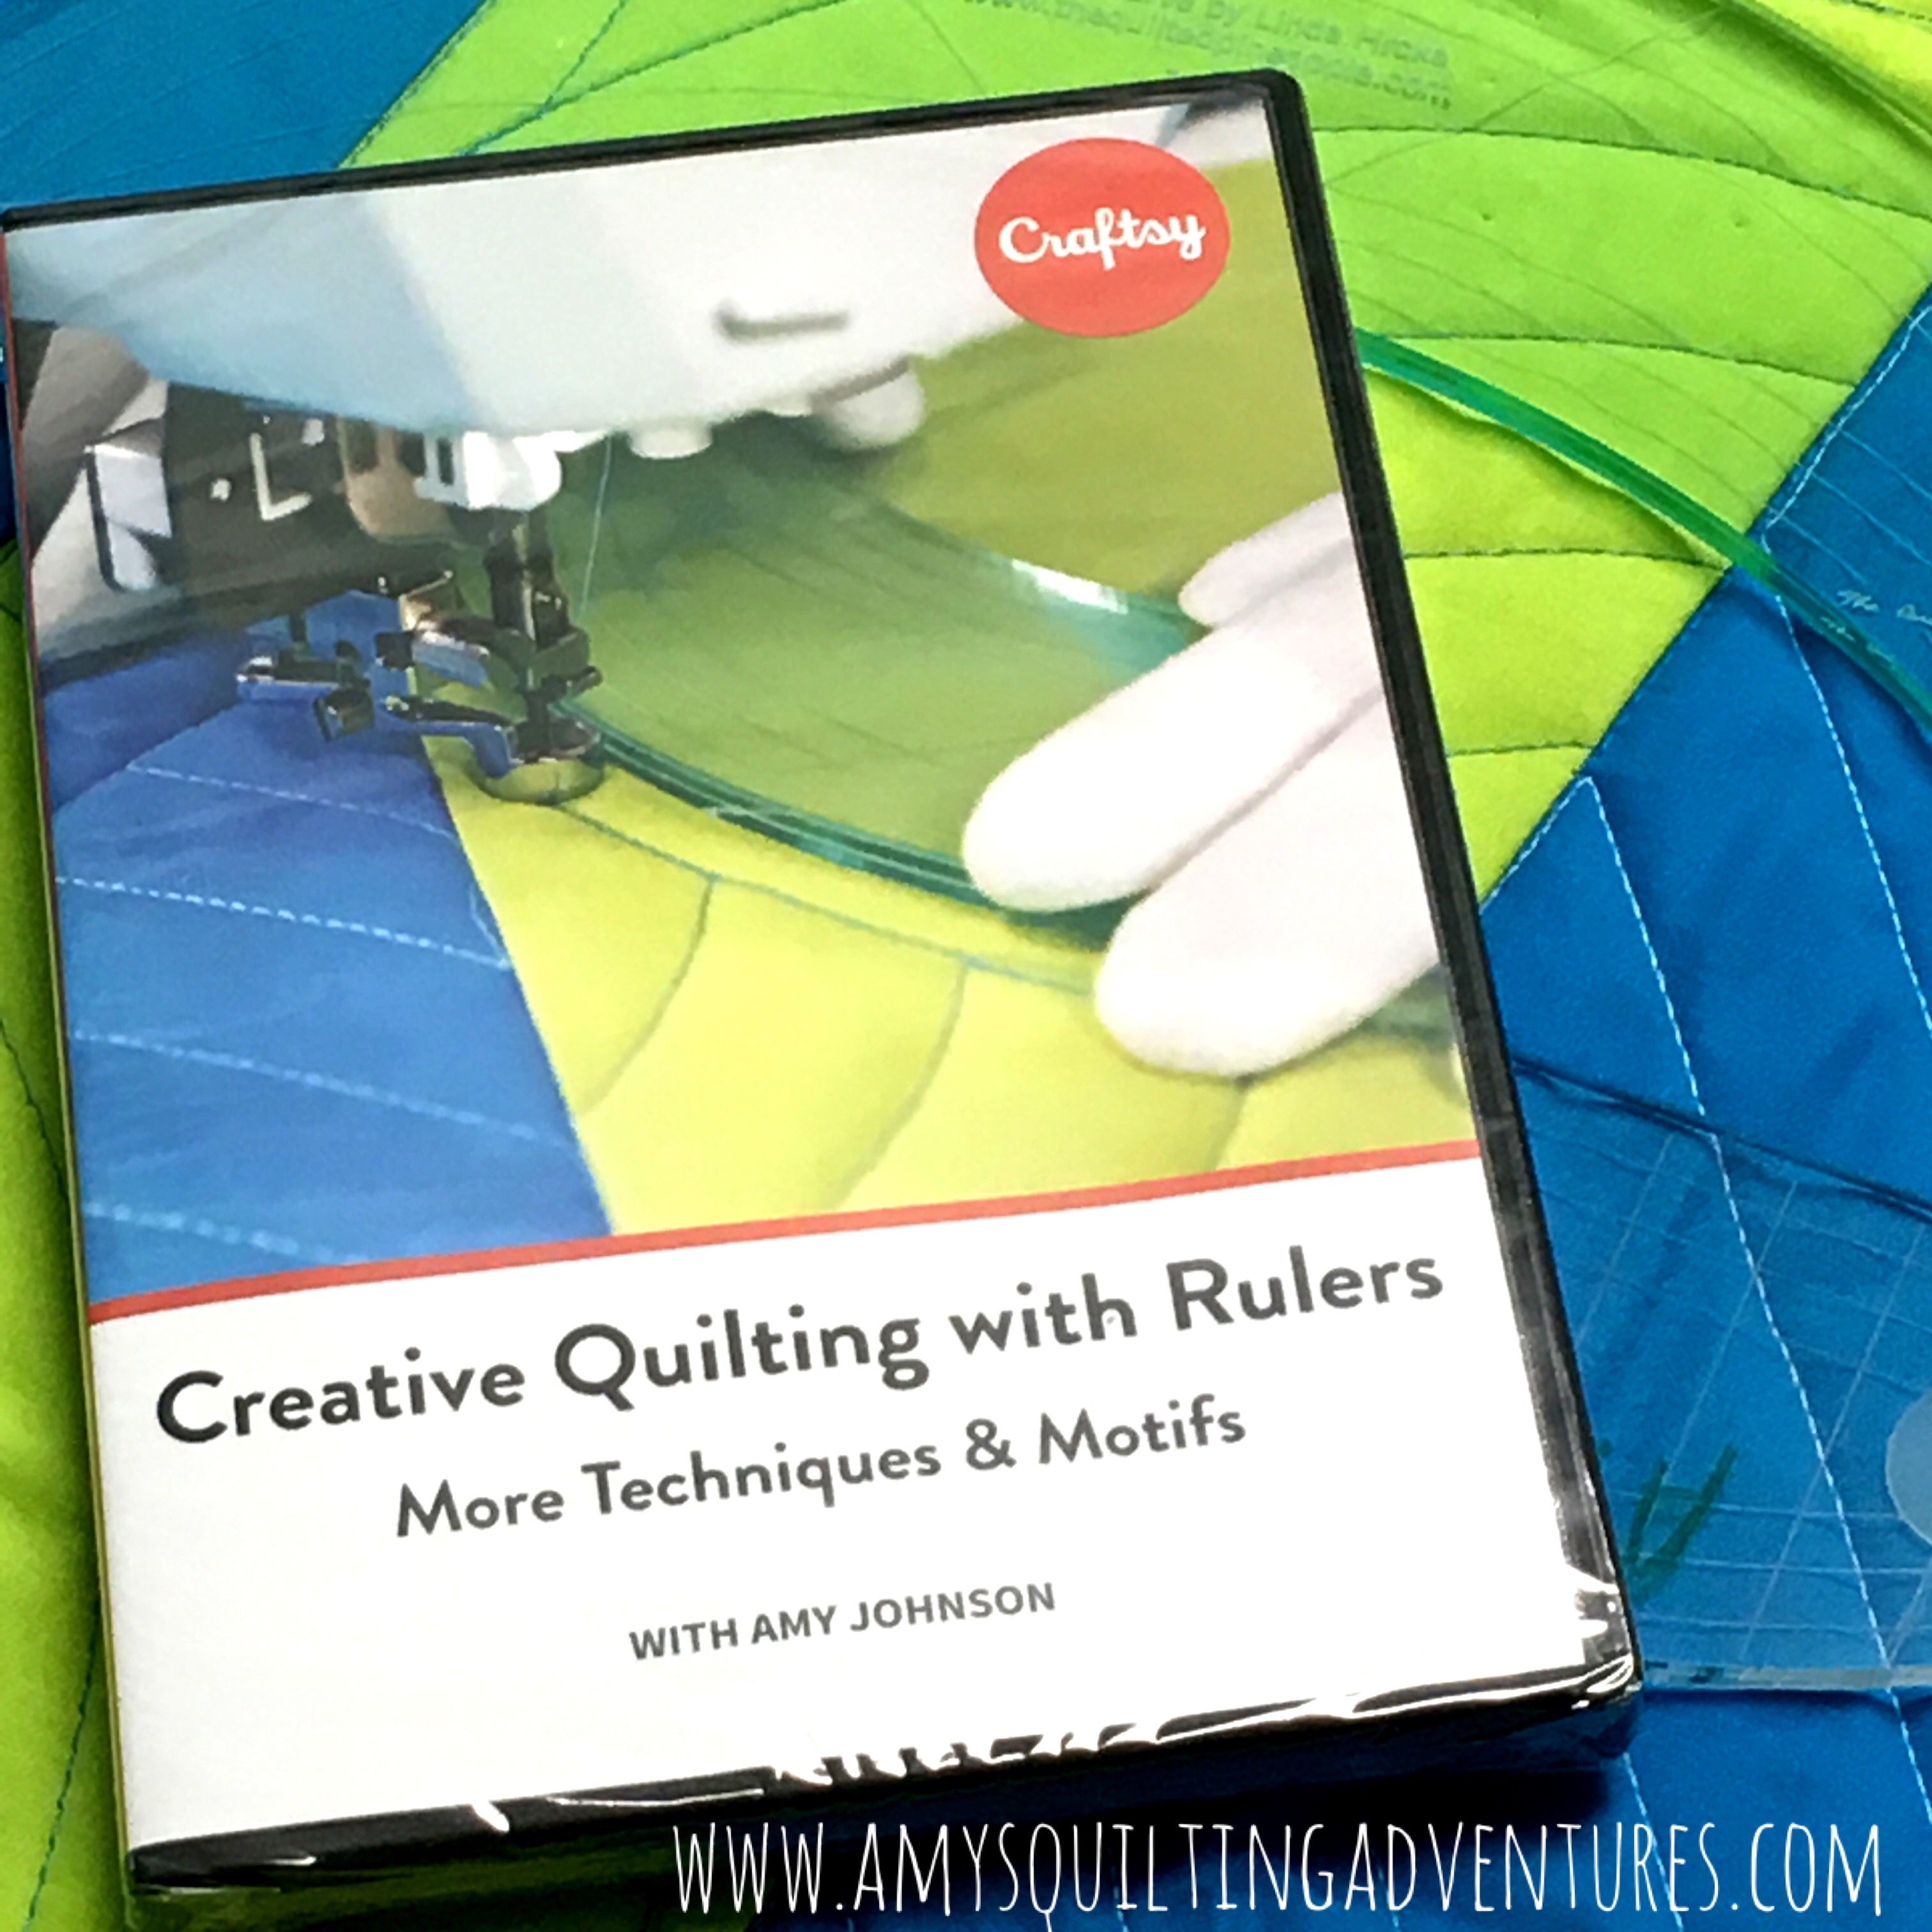 Creative Quilting with Rulers DVD for Ruler Work